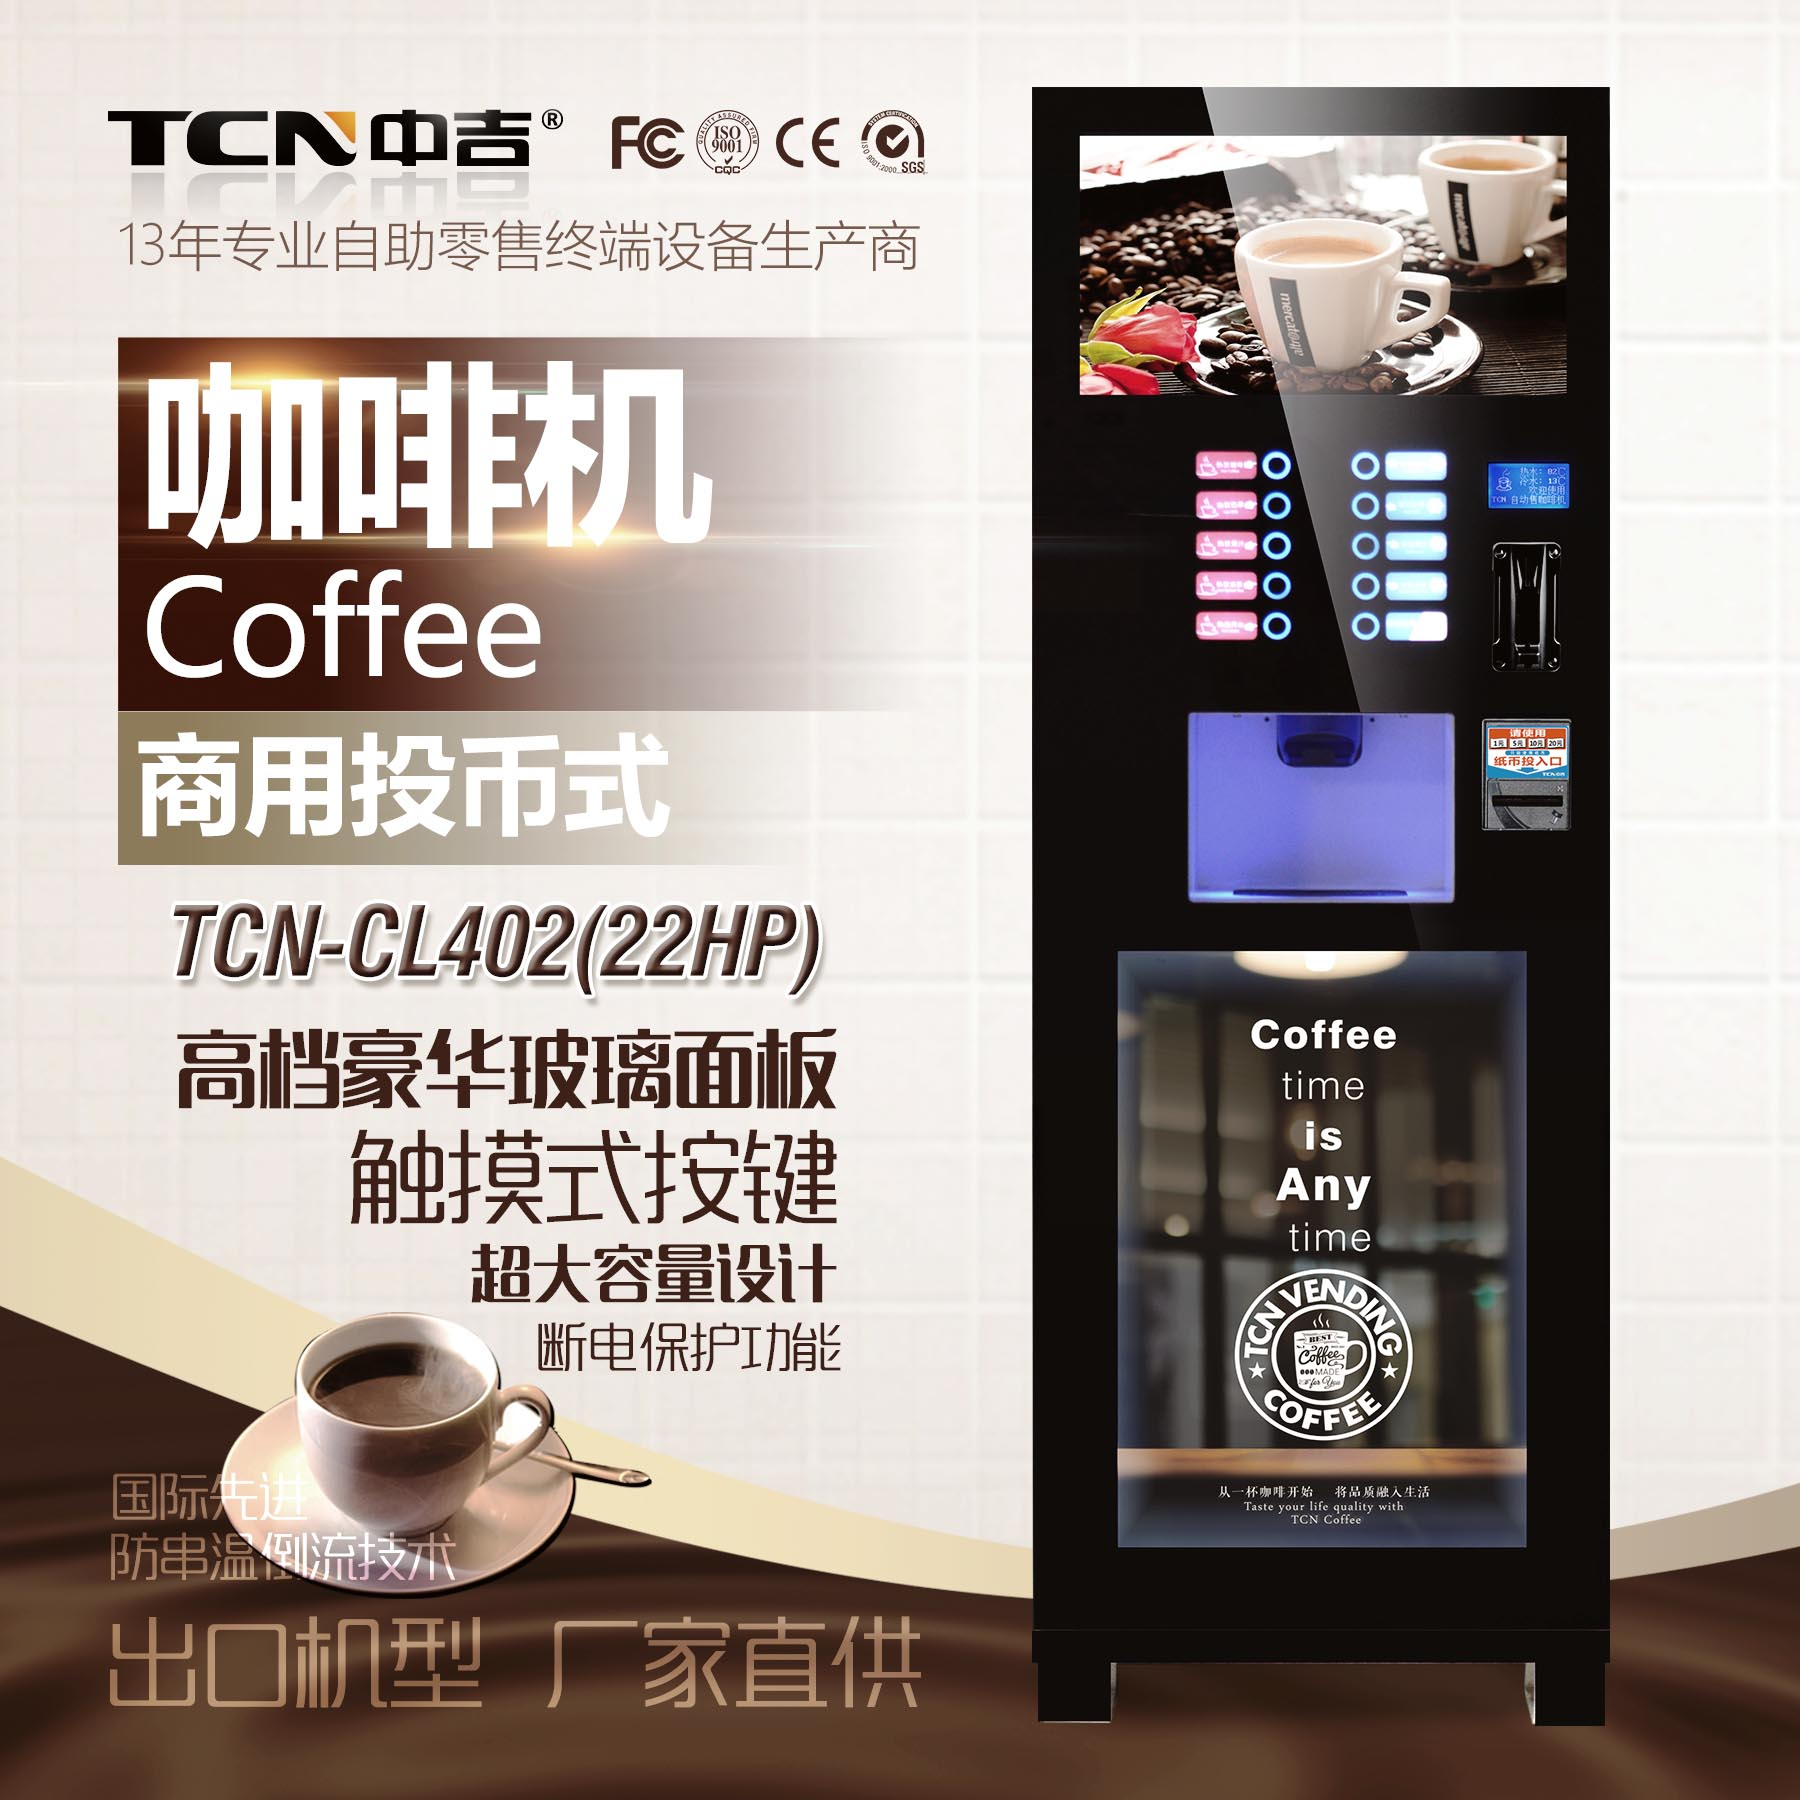 China and kyrgyzstan vertical commercial automatic coffee machine coin upscale 22 inch lcd advertising screen full of hot and cold coffee machine